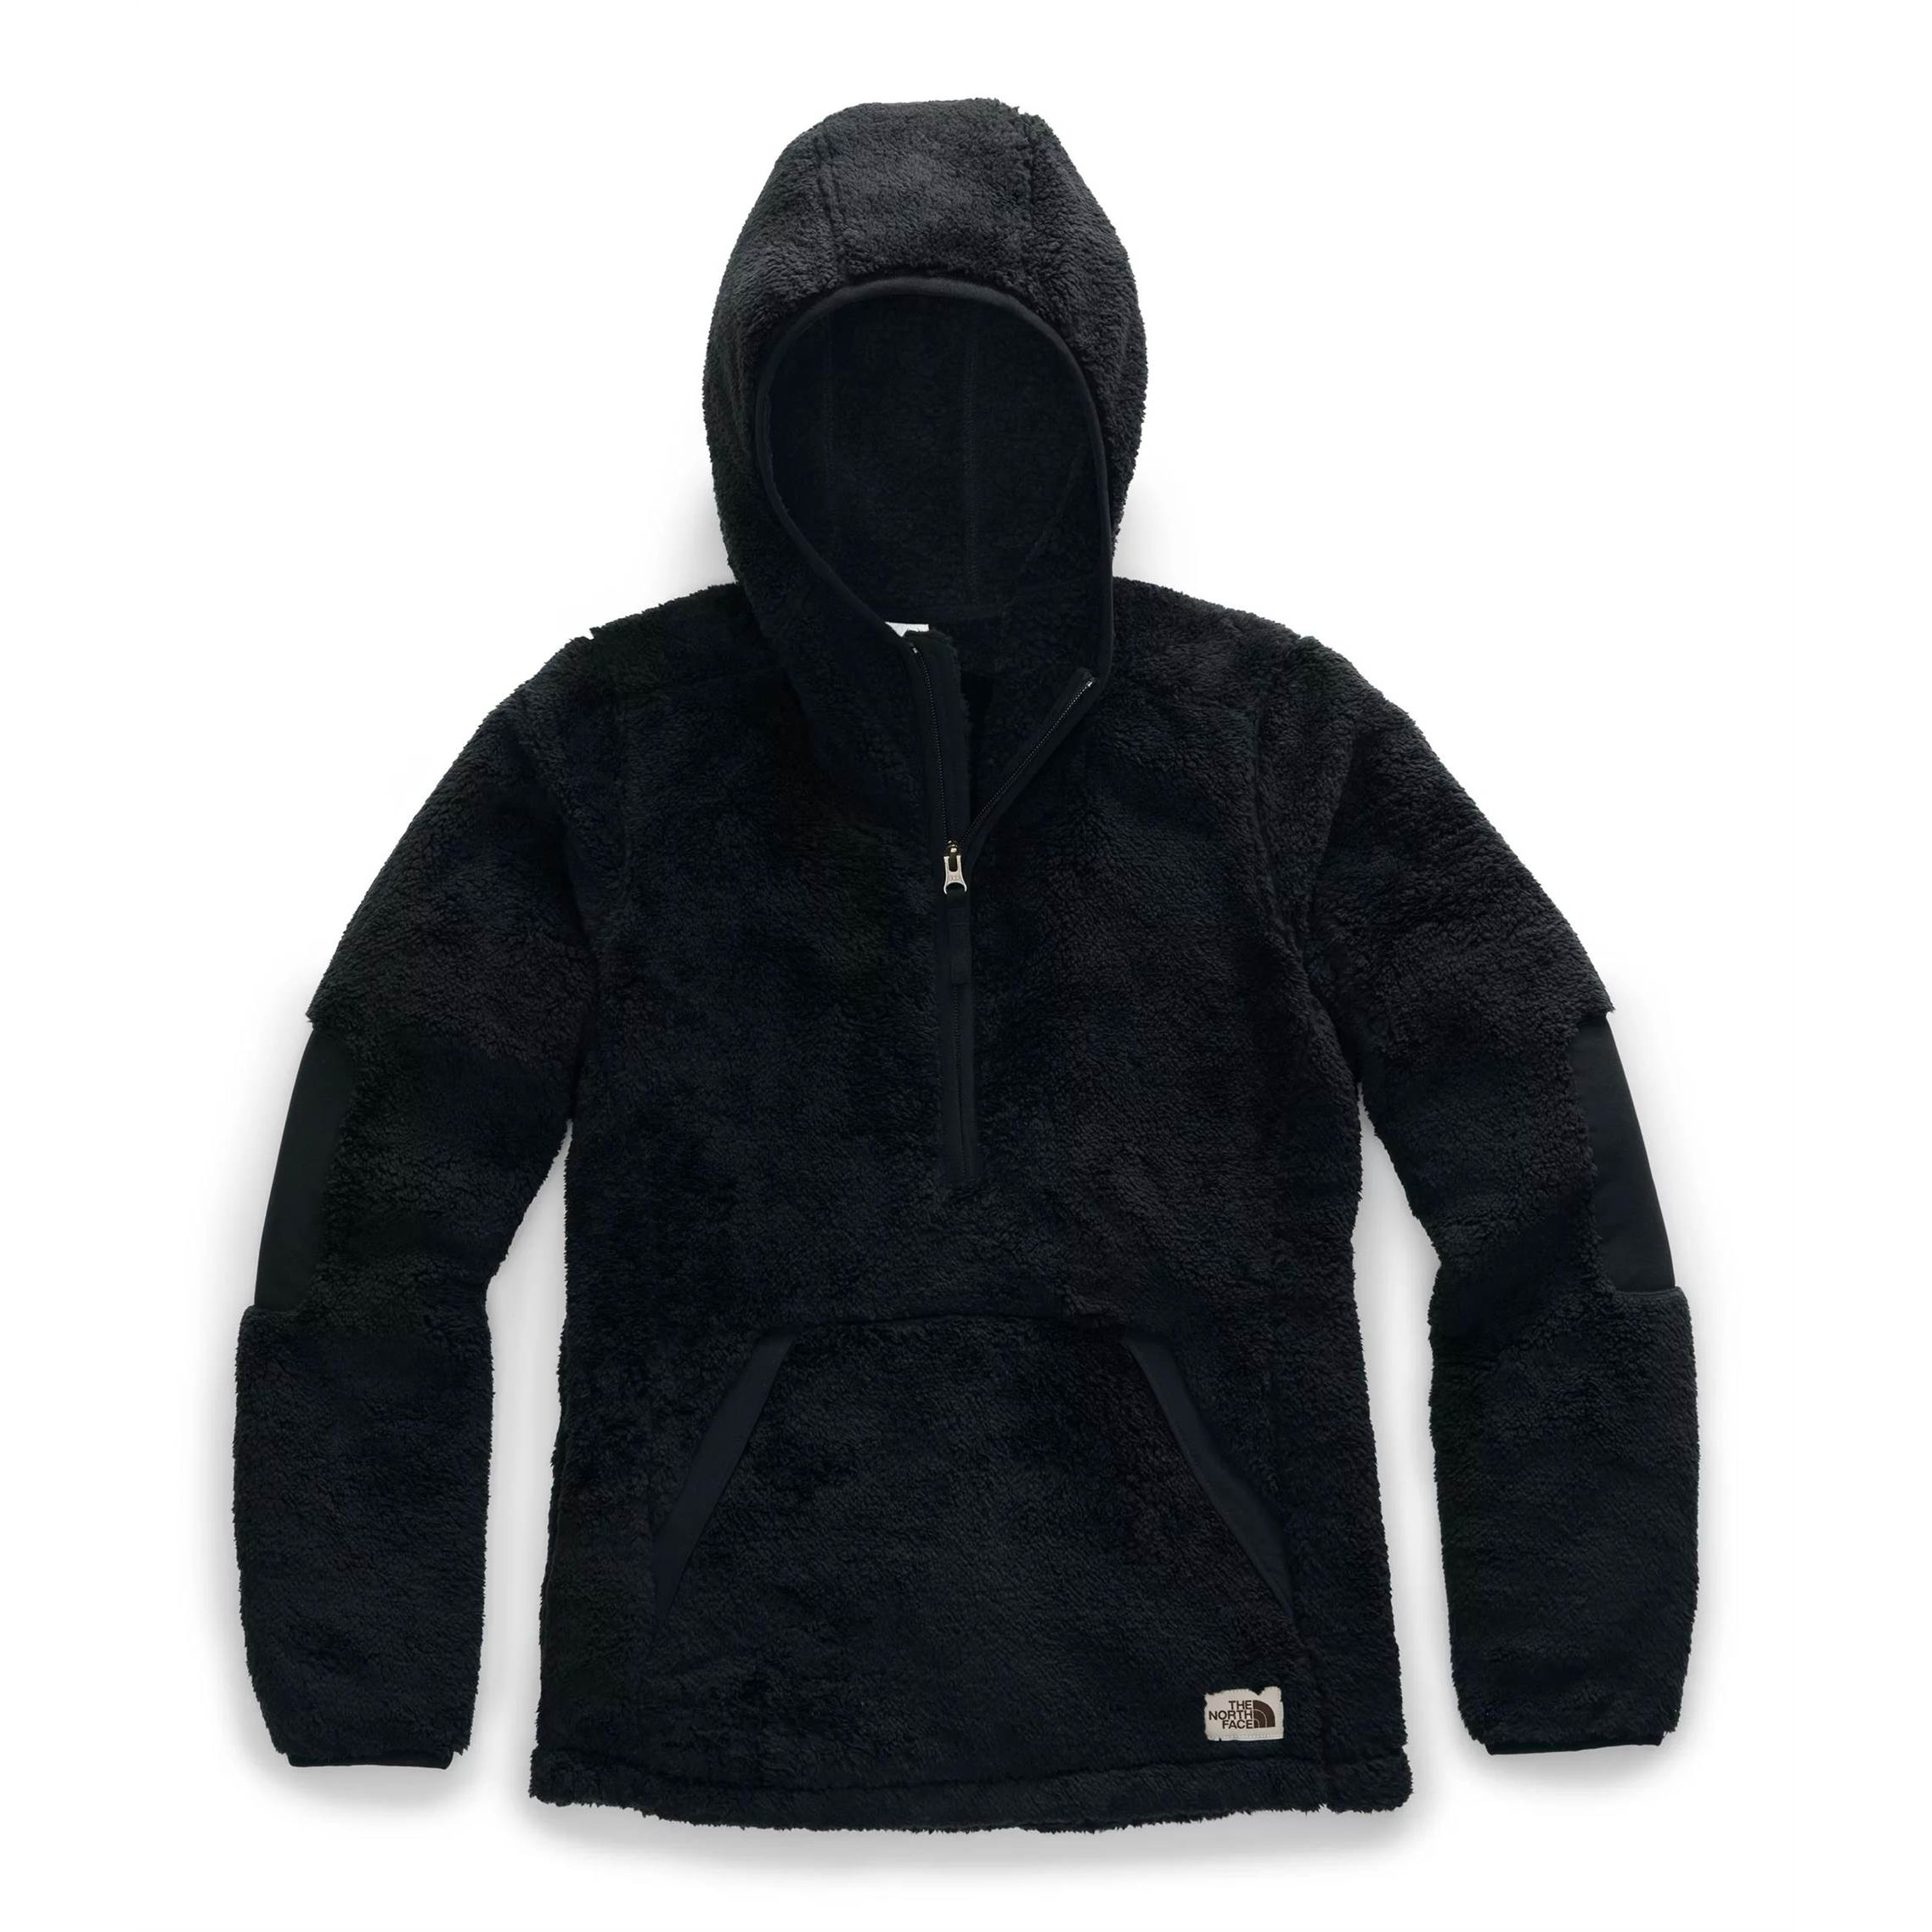 Campshire Pullover Hoodie 2.0 - Women's